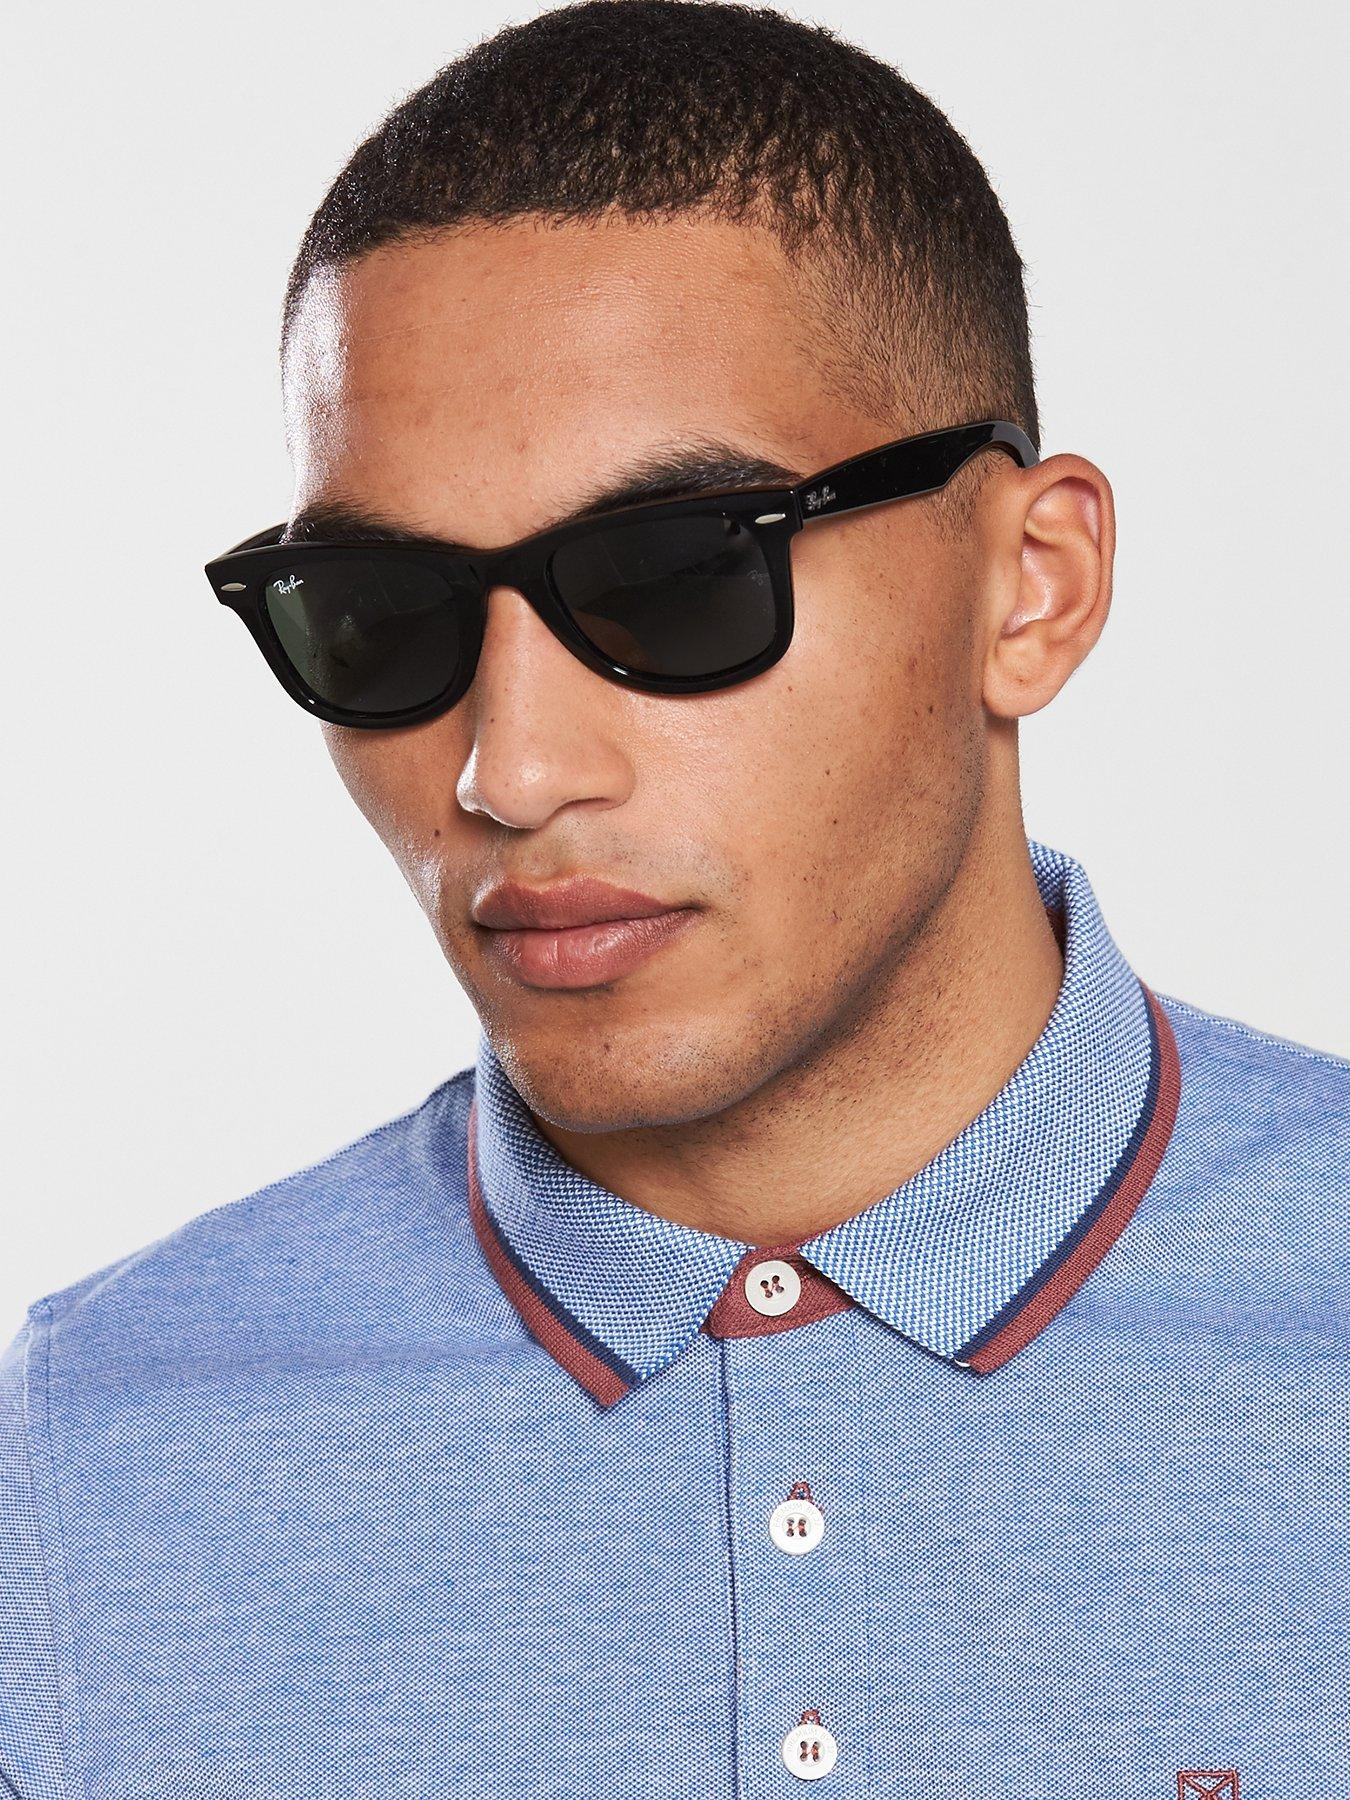 Uk Ray Ban Sunglasses  ray ban wayfarer sunglasses